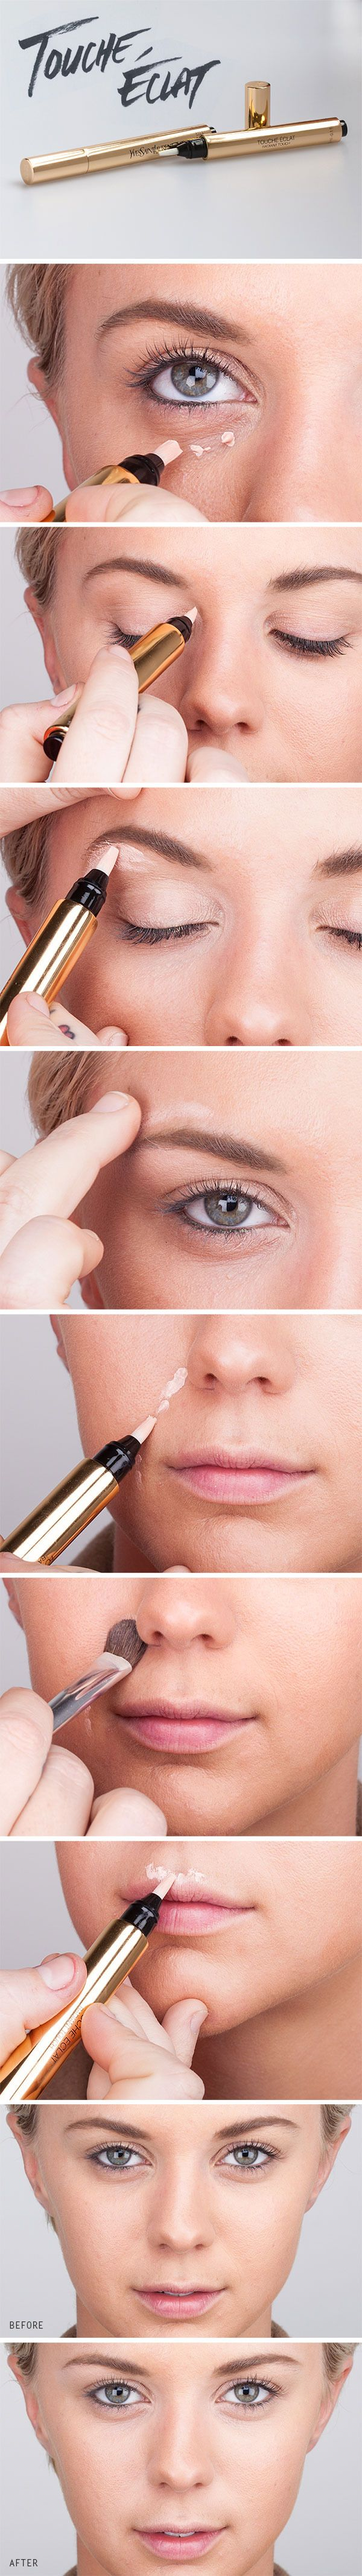 Concealer awesome beauty tricks